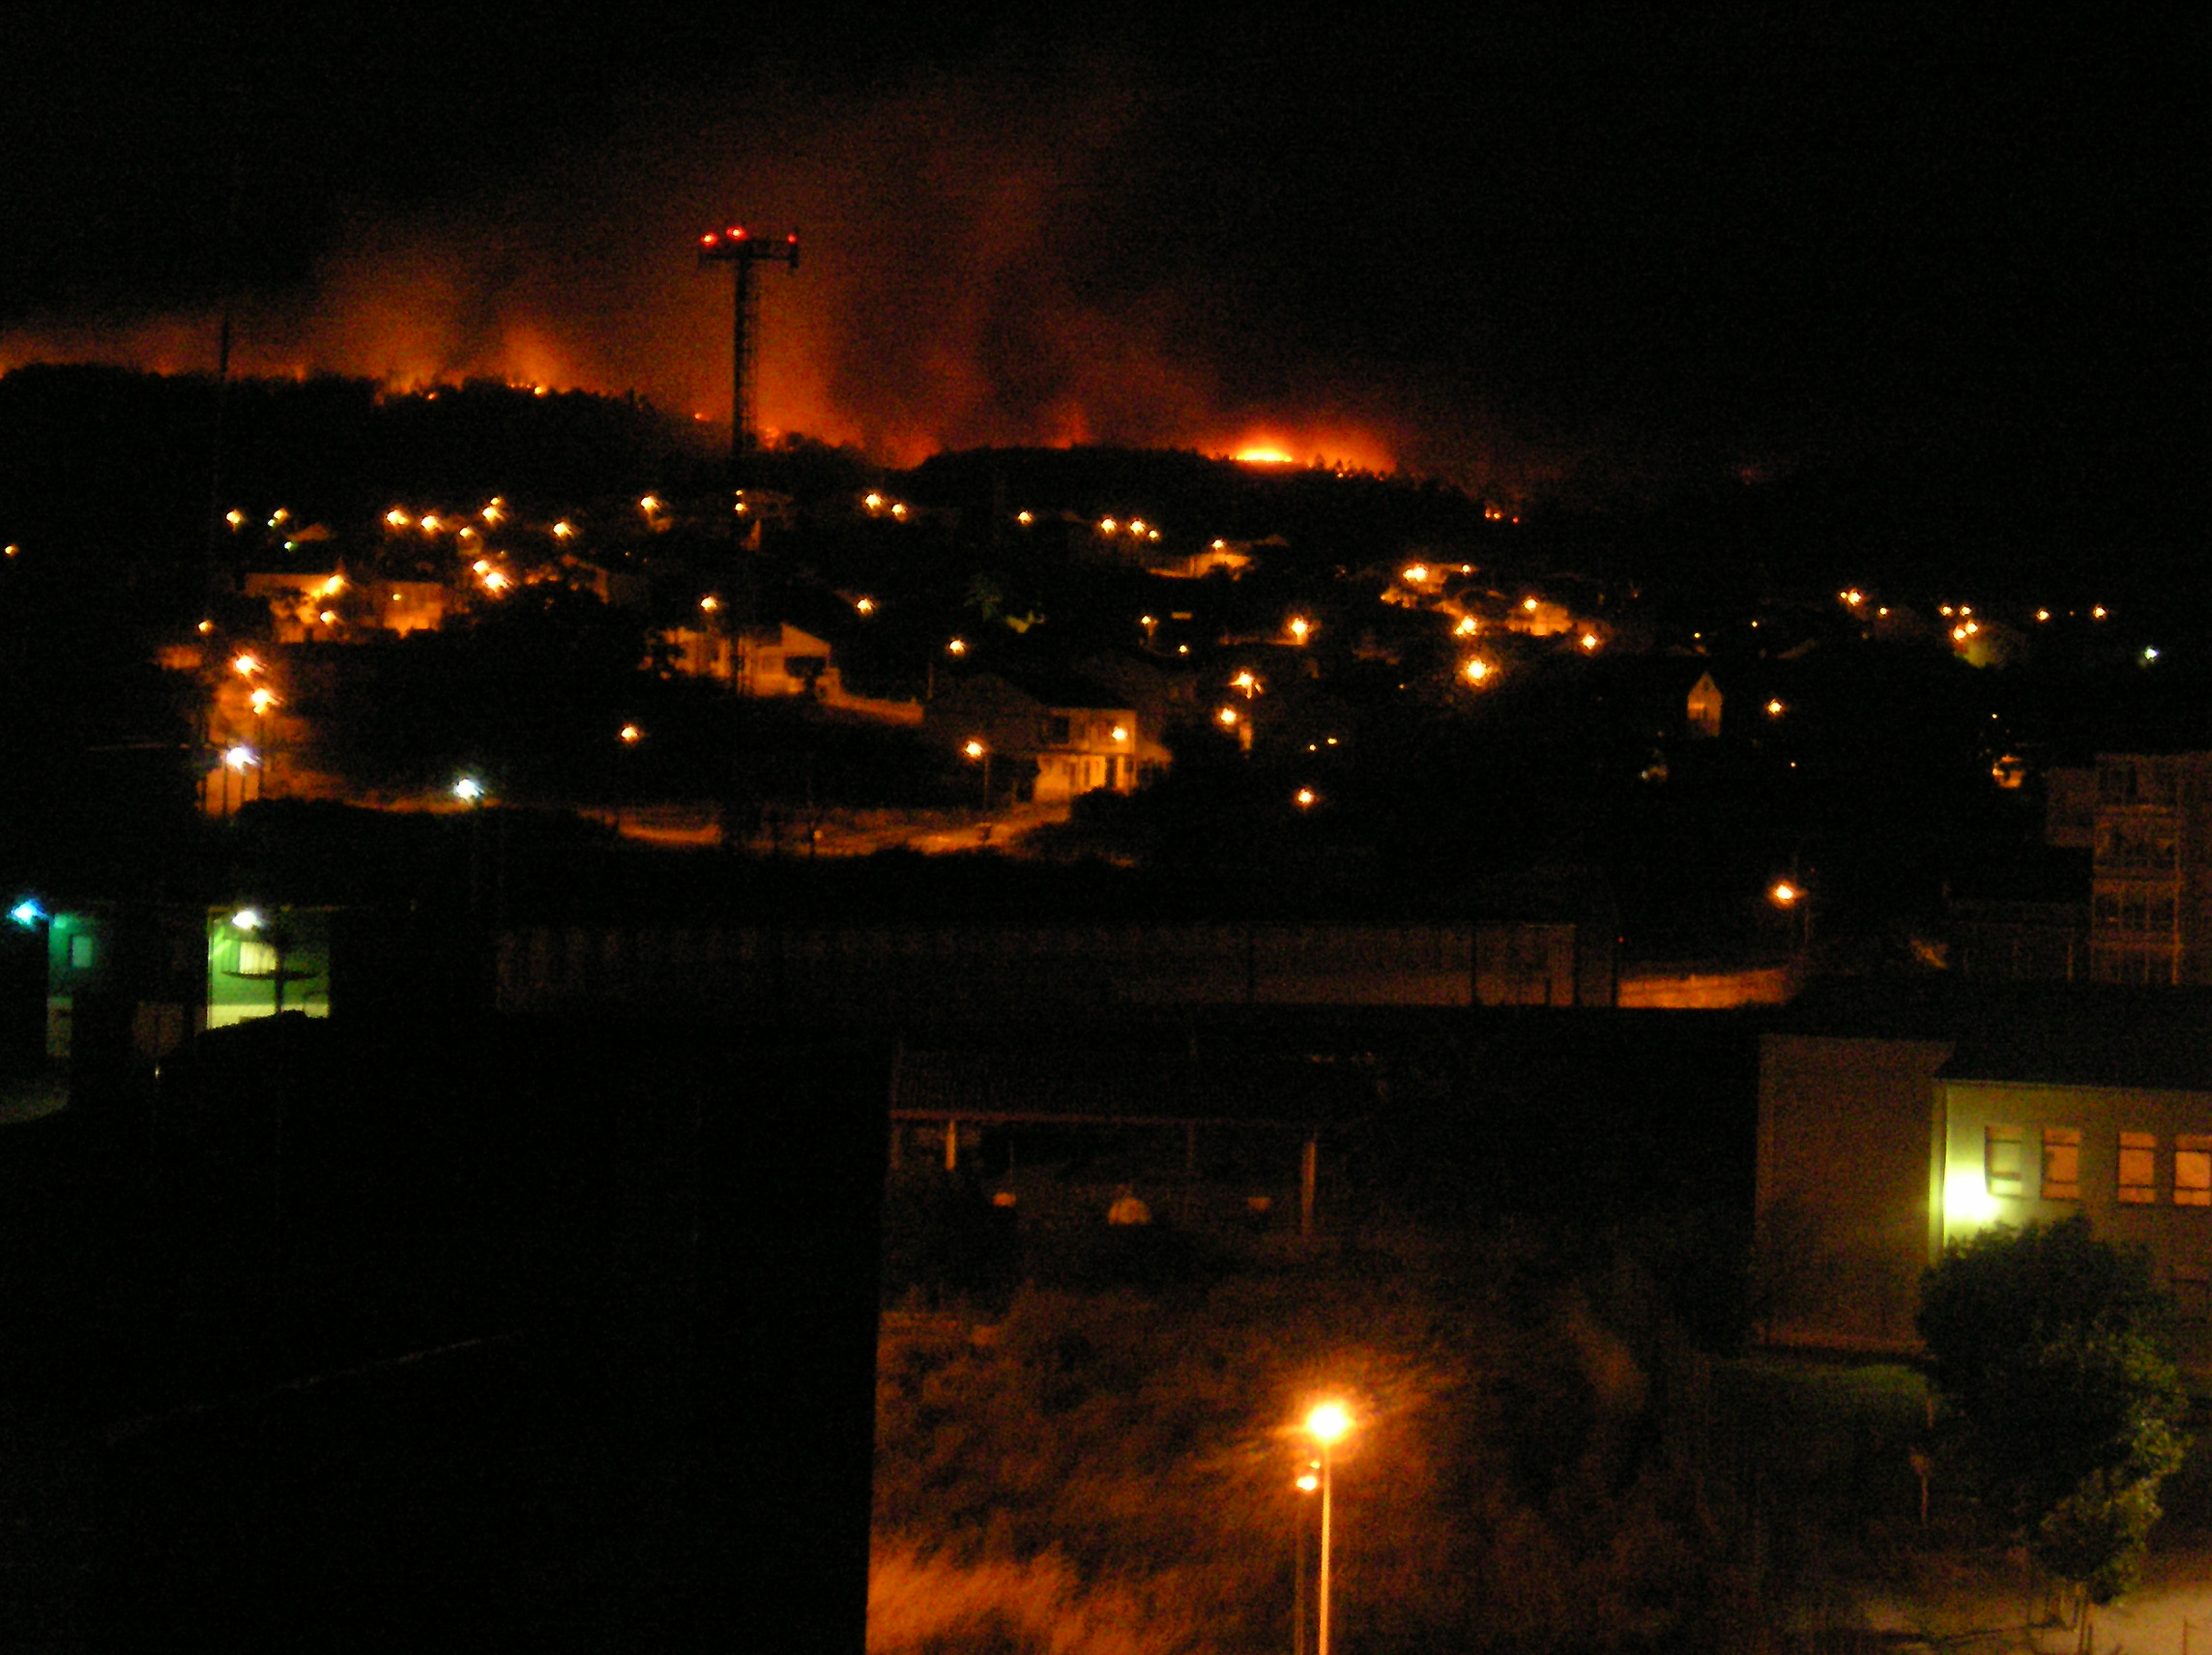 bosque xiabre ardiendo